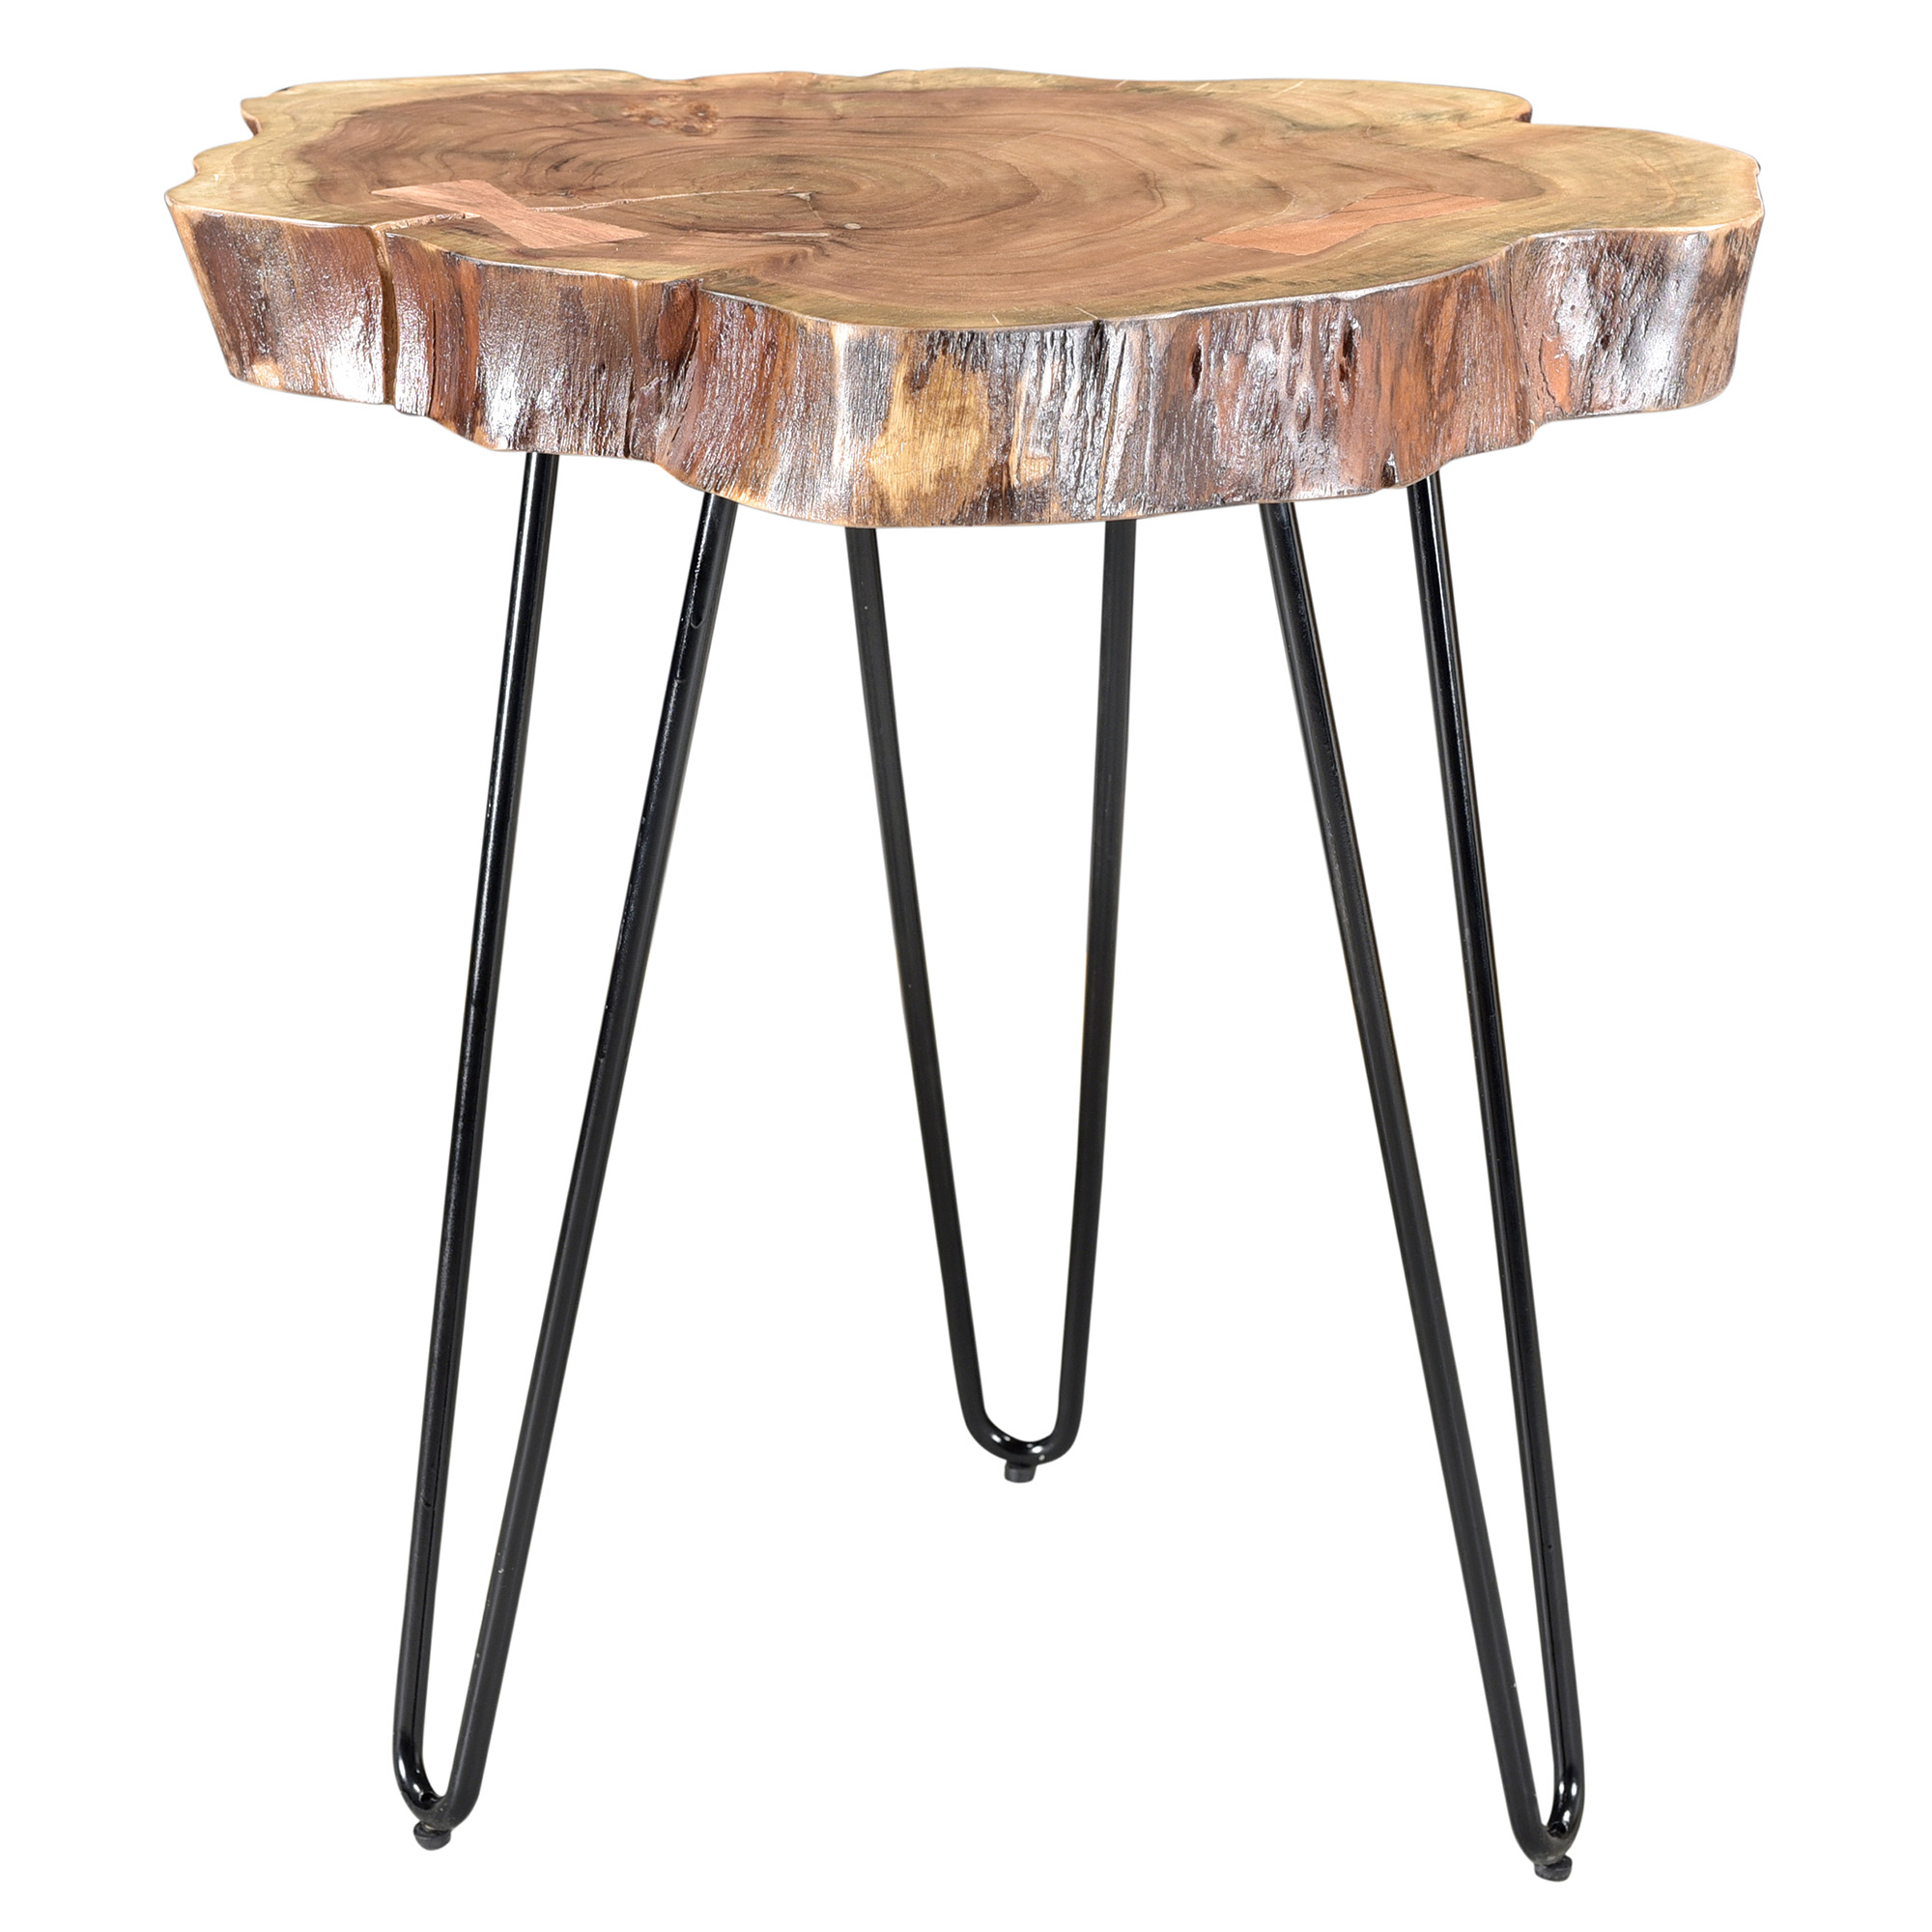 Rustic Modern Solid Wood & Iron Accent Table in Natural